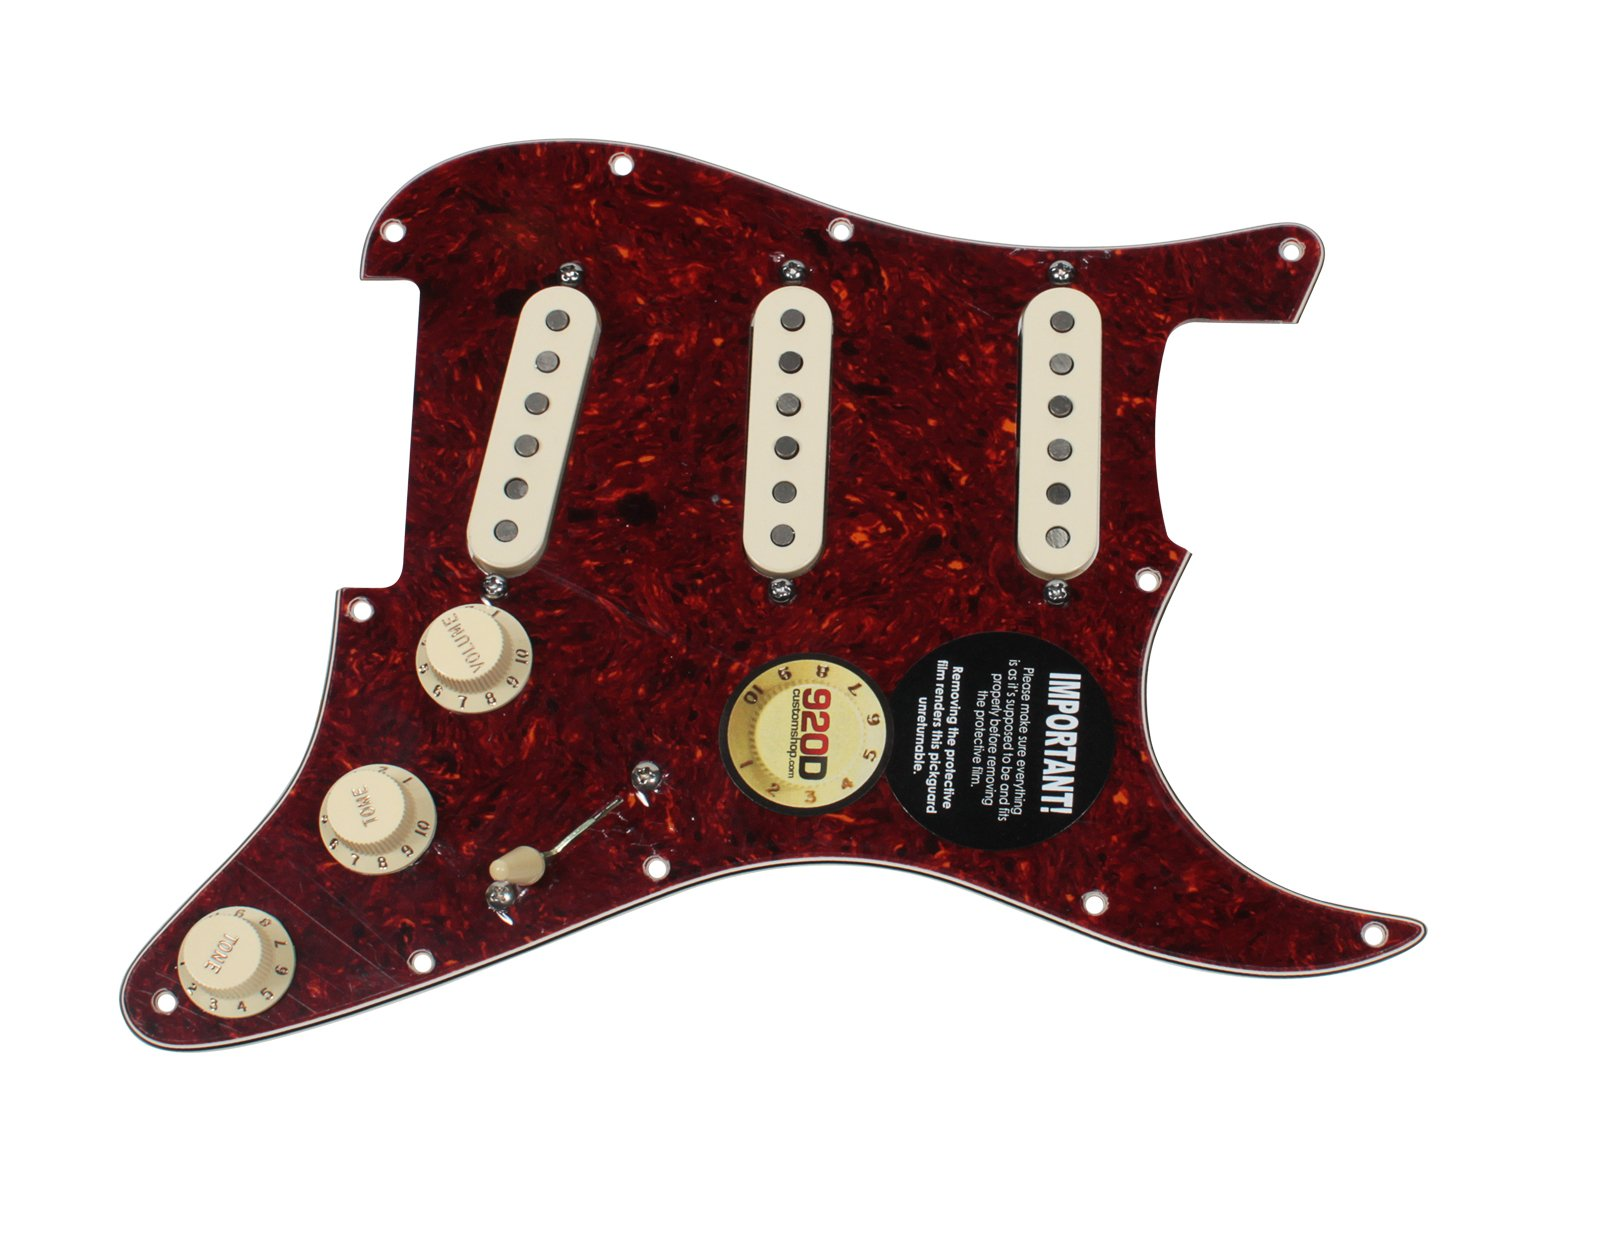 Fender Tex-Mex 920D Loaded Pre-wired Strat Pickguard, Tortoise/Aged White